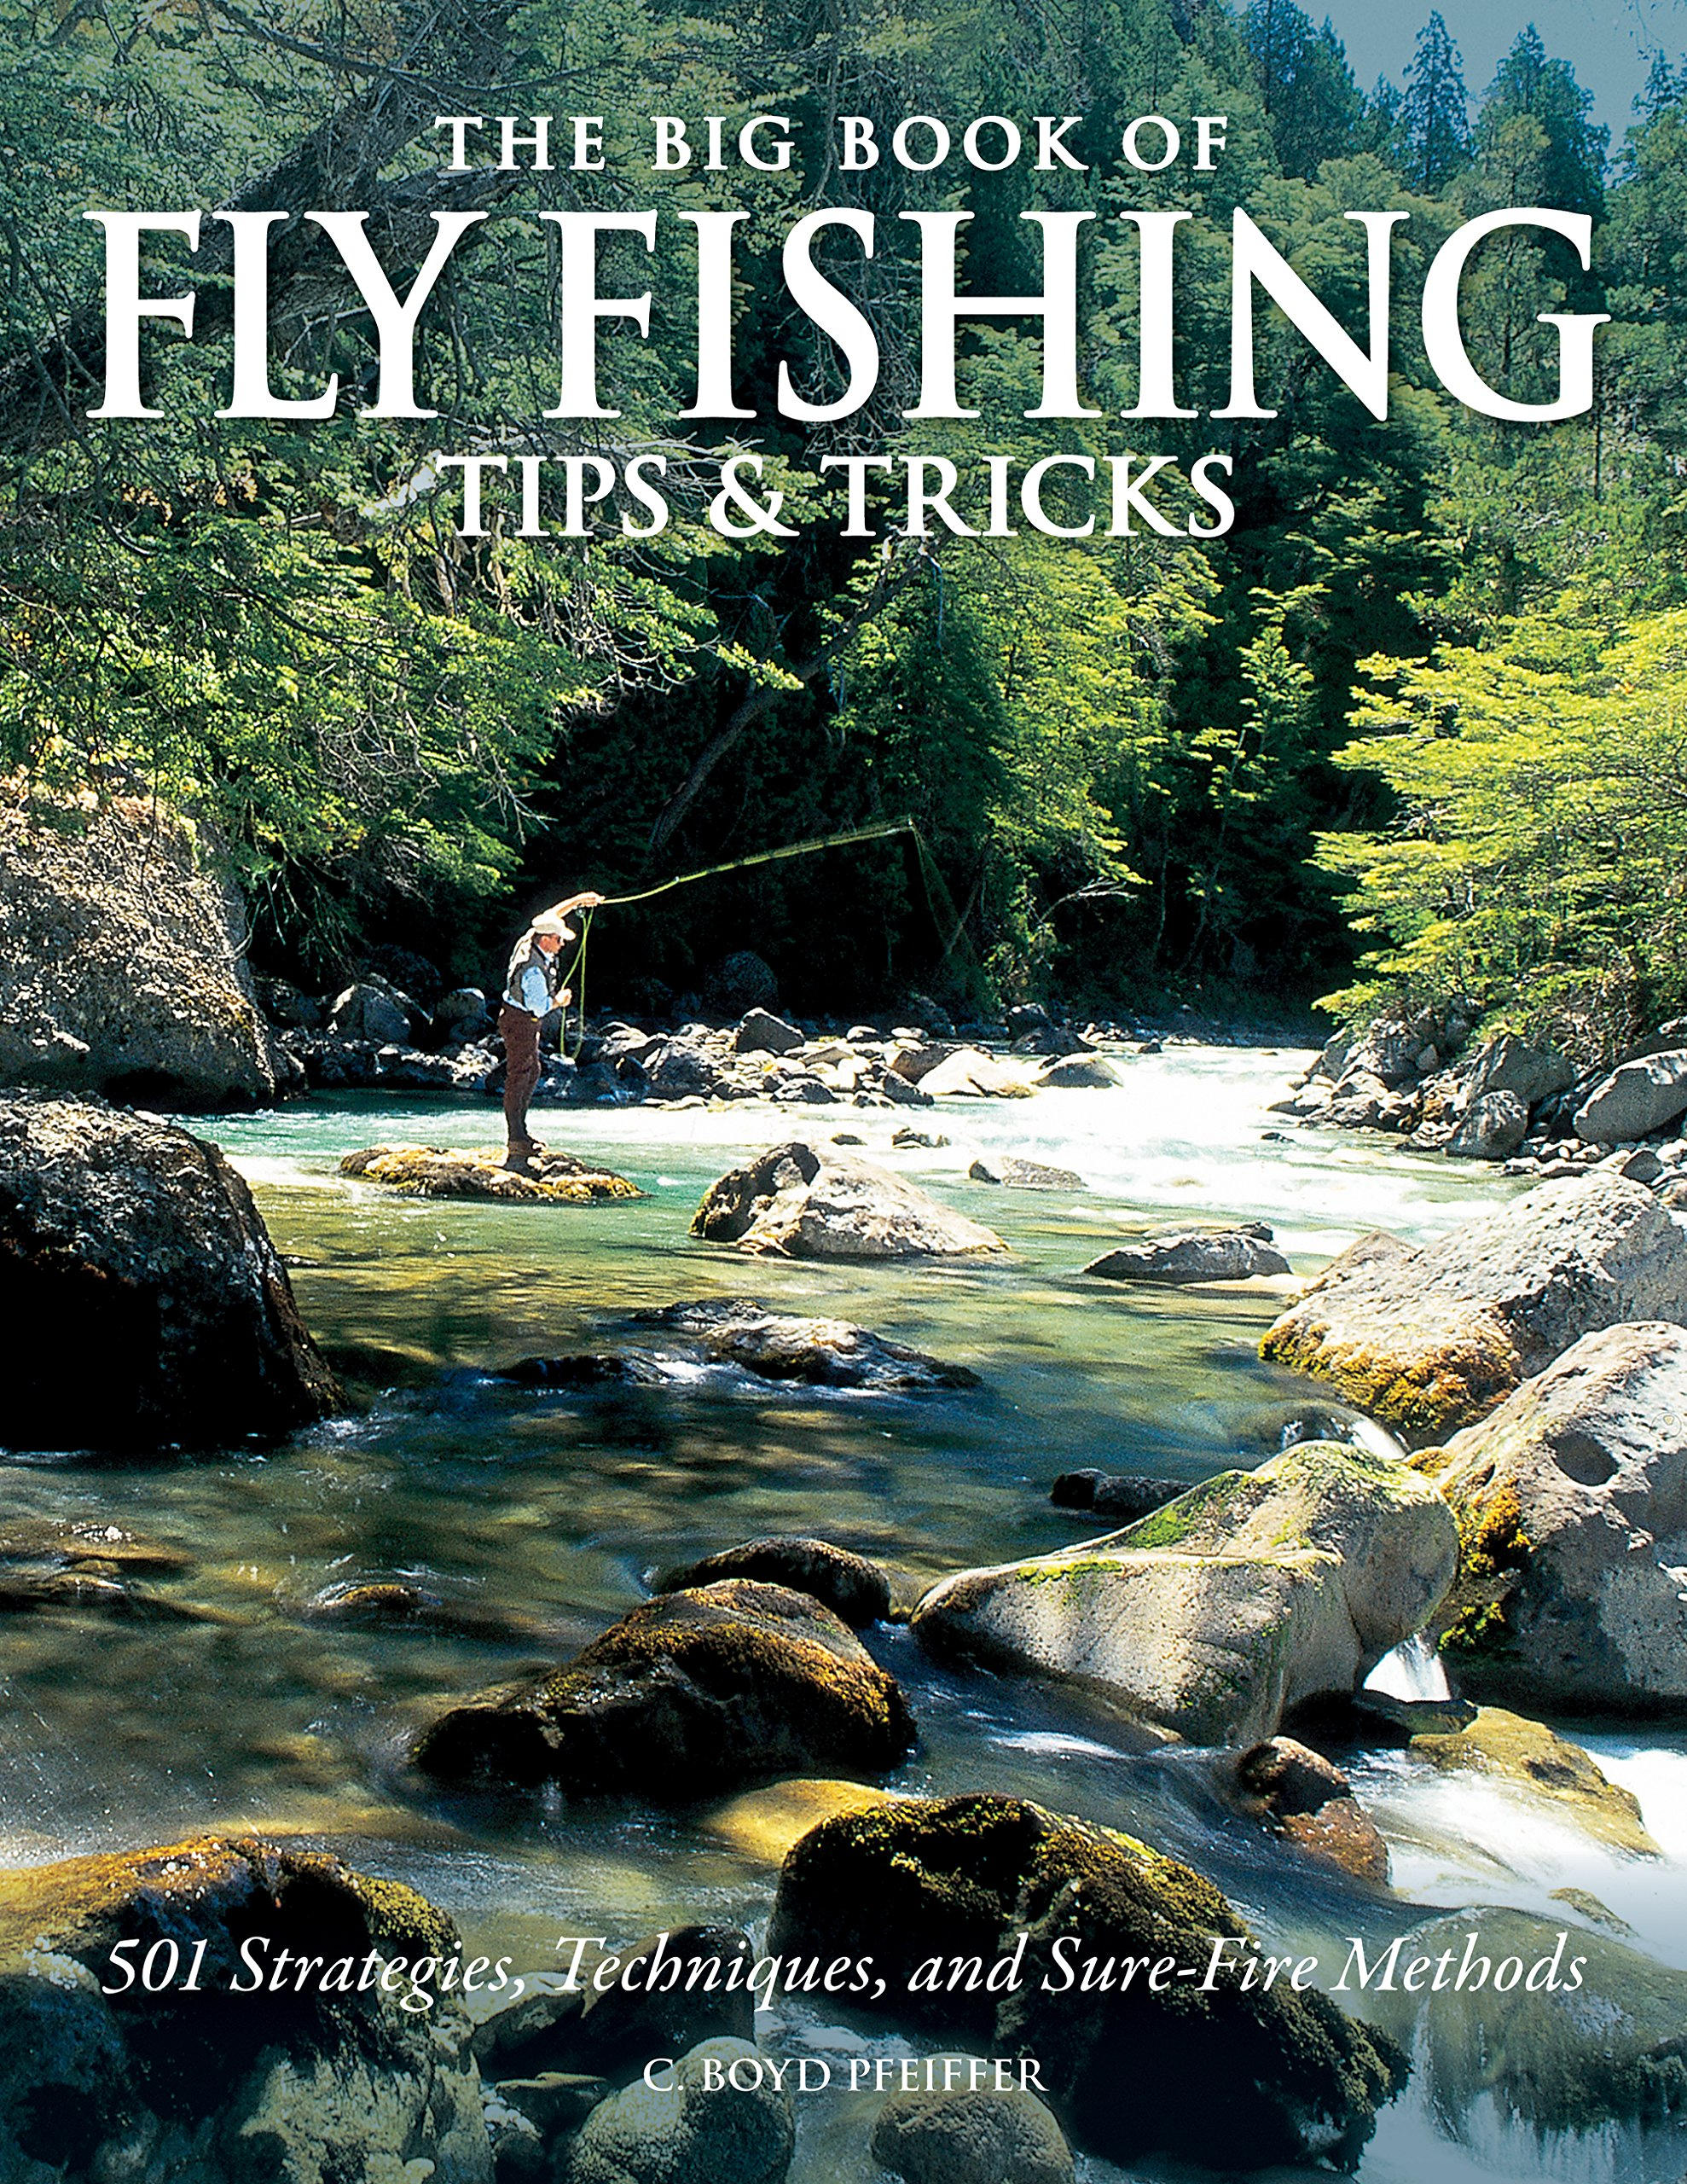 Read Online The Big Book of Fly Fishing Tips & Tricks: 501 Strategies, Techniques, and Sure-Fire Methods pdf epub